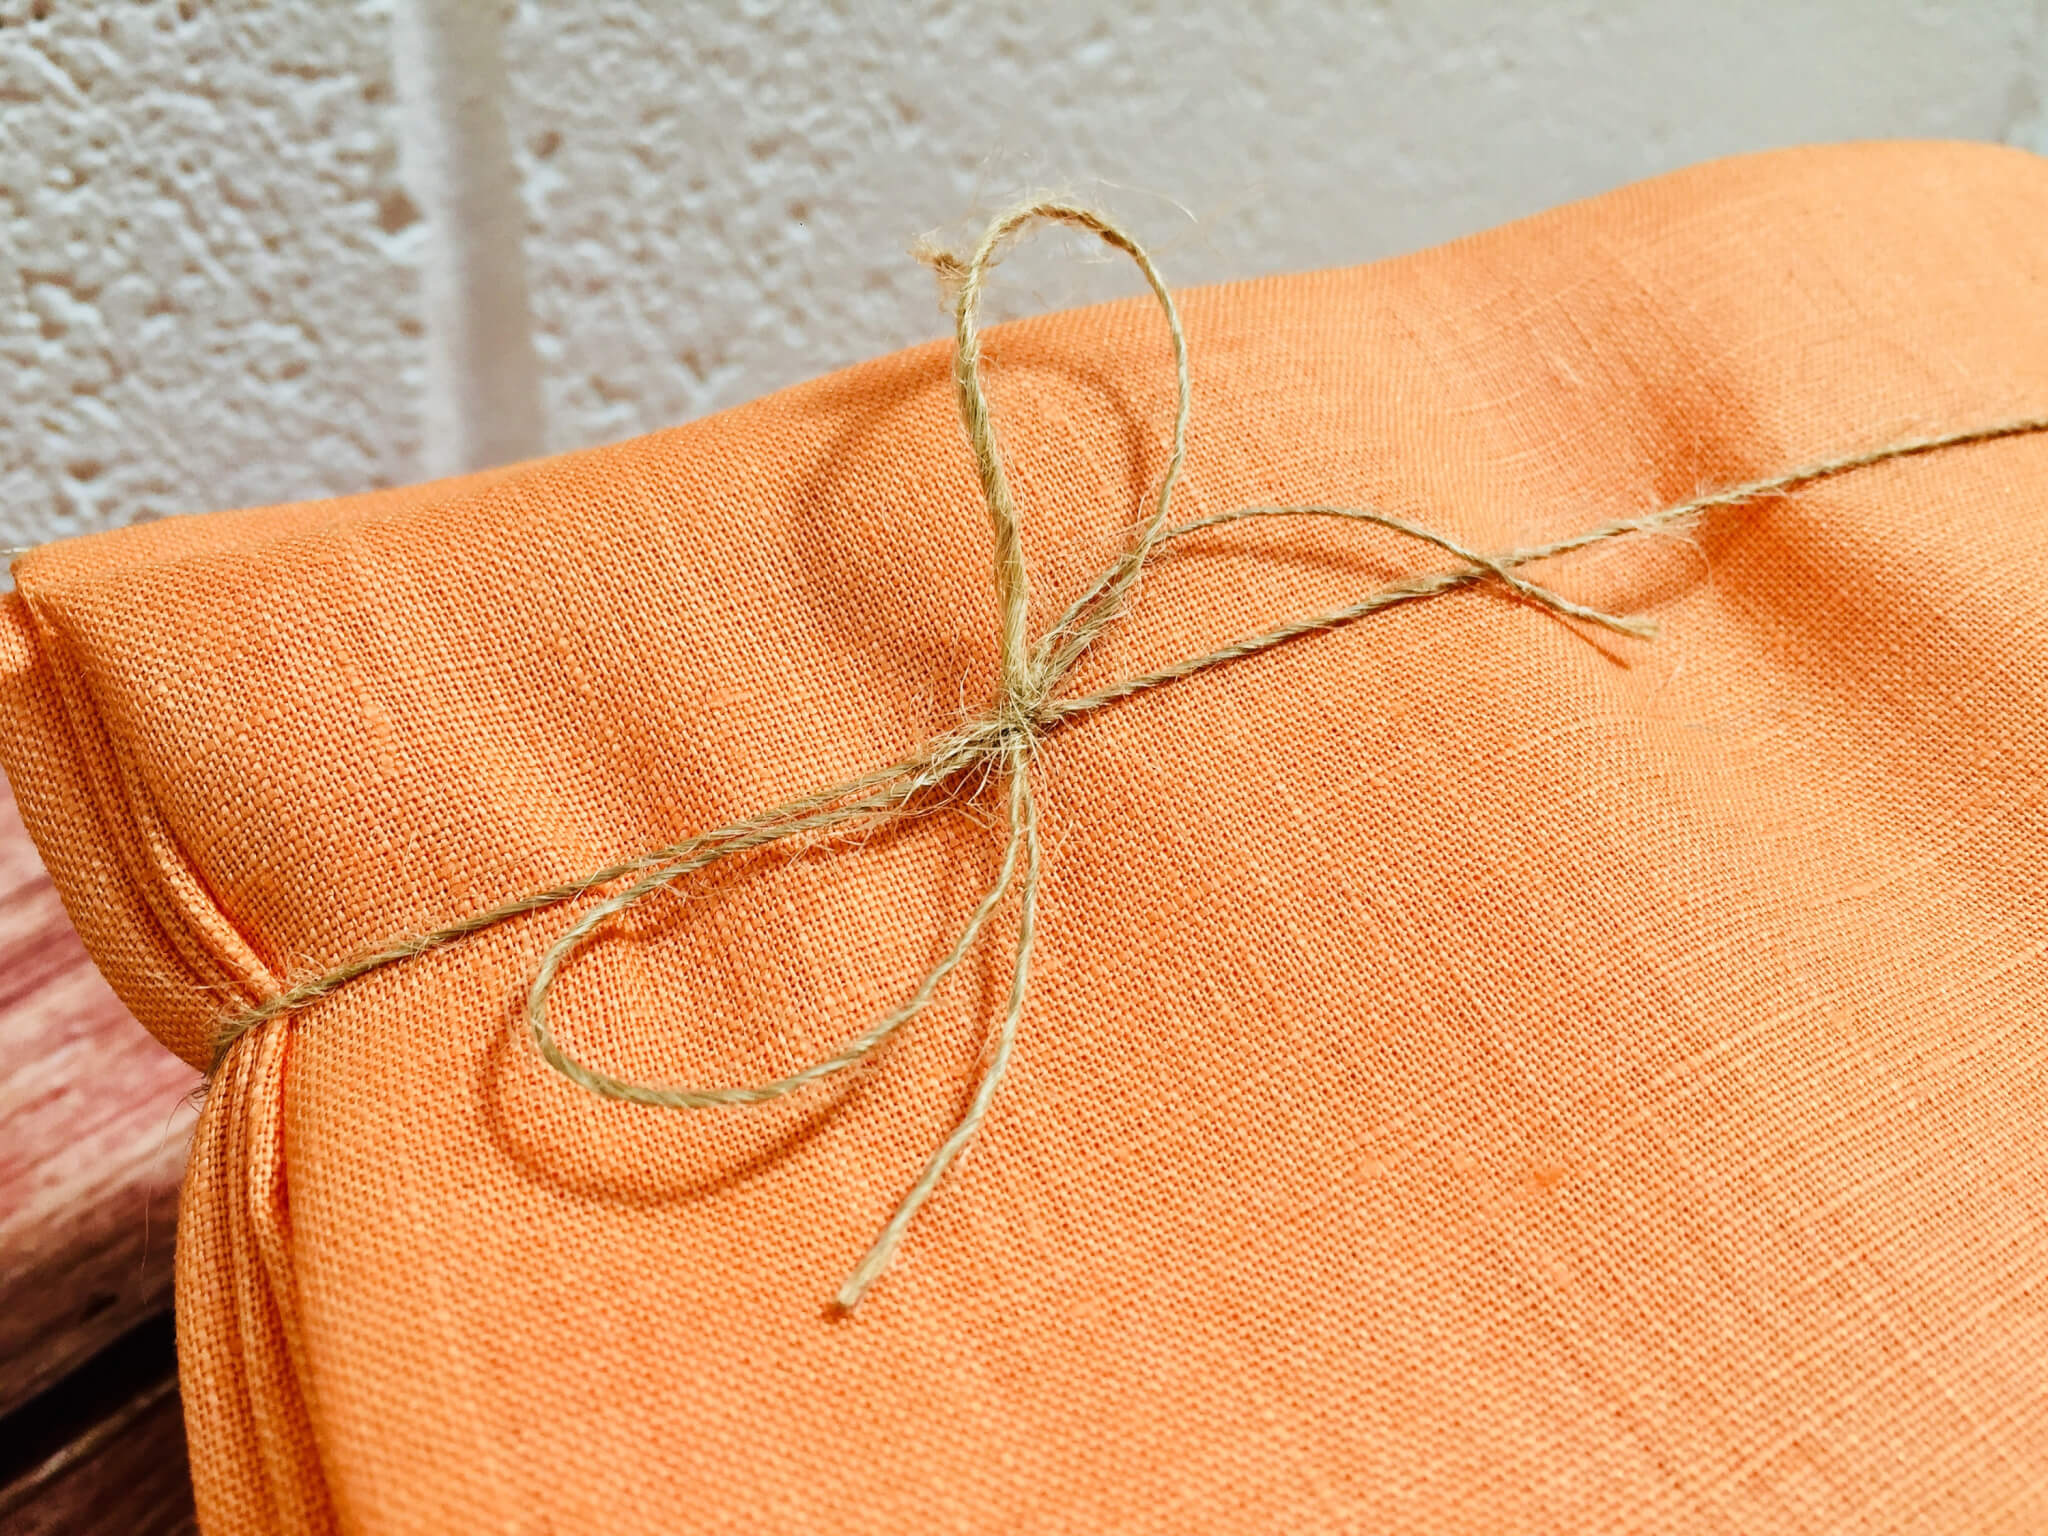 soft-linen-fabric-material-100-linens-textile-for-home-decor-curtains-clothes-140cm-wide-plain-orange-5d73eedc1.jpg